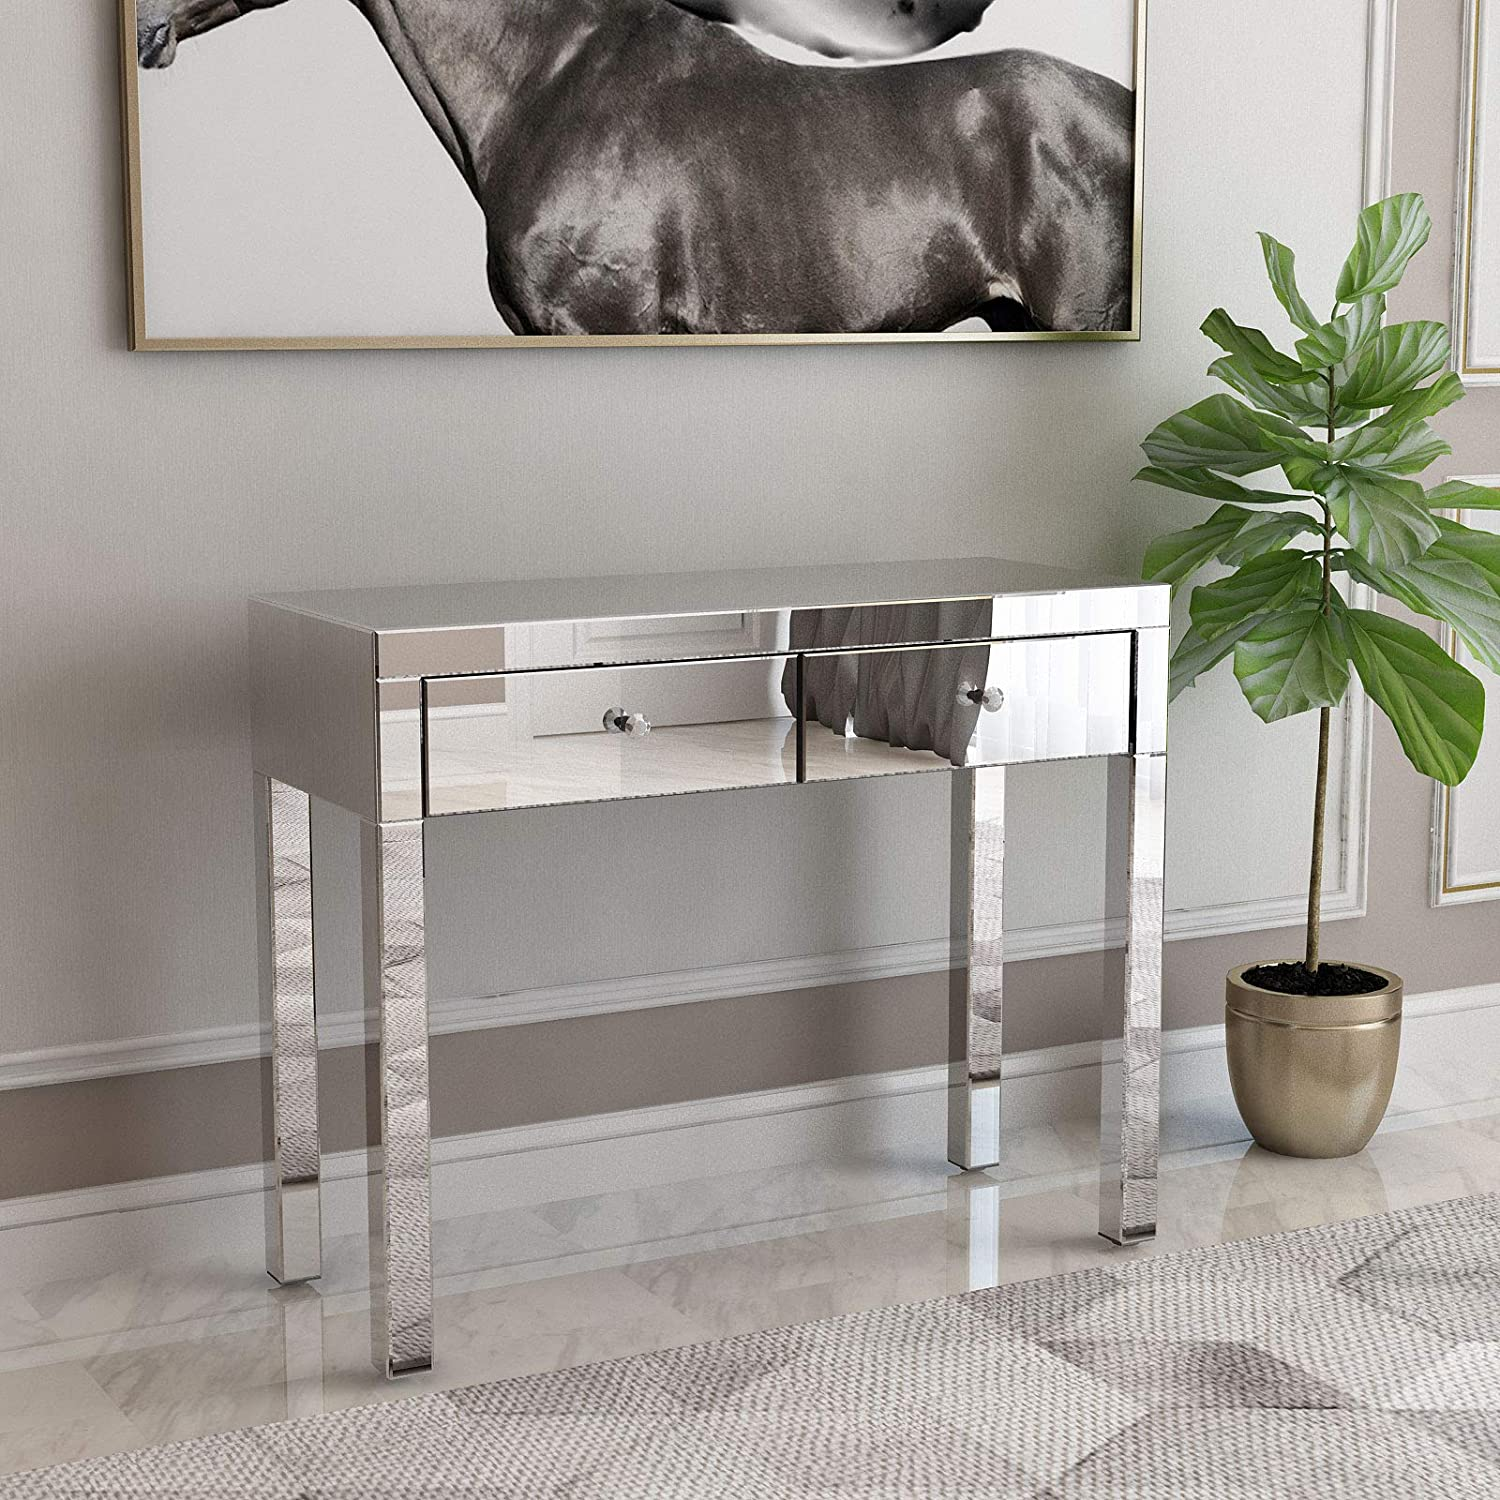 Mecor Mirrored Console Table Occasional Sofa Side Table With 2 Drawers Silver Entry Table Vanity Makeup Dressing Table For Entryway Hallway Living Room Kitchen Dining